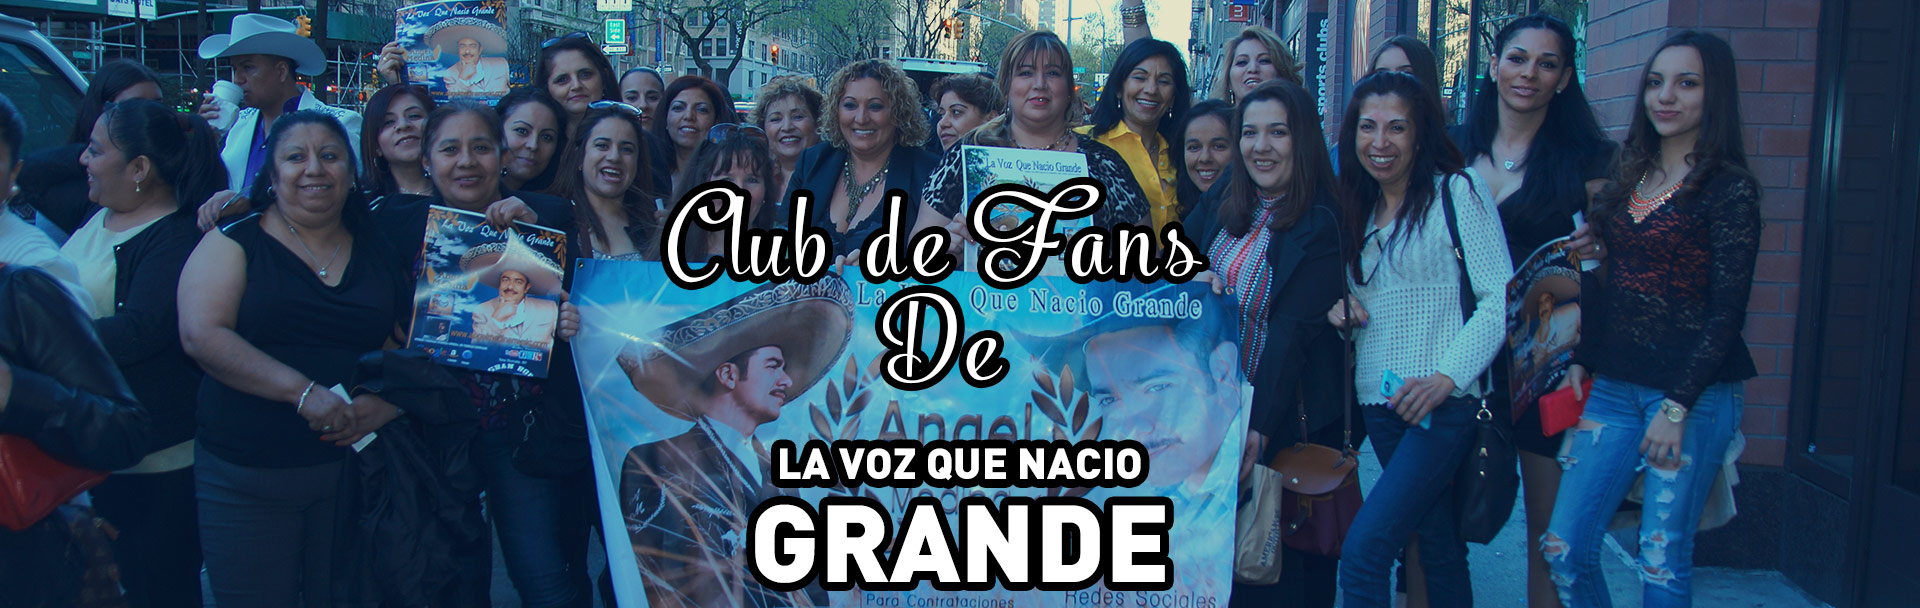 club-de-fans-de-angel-medina